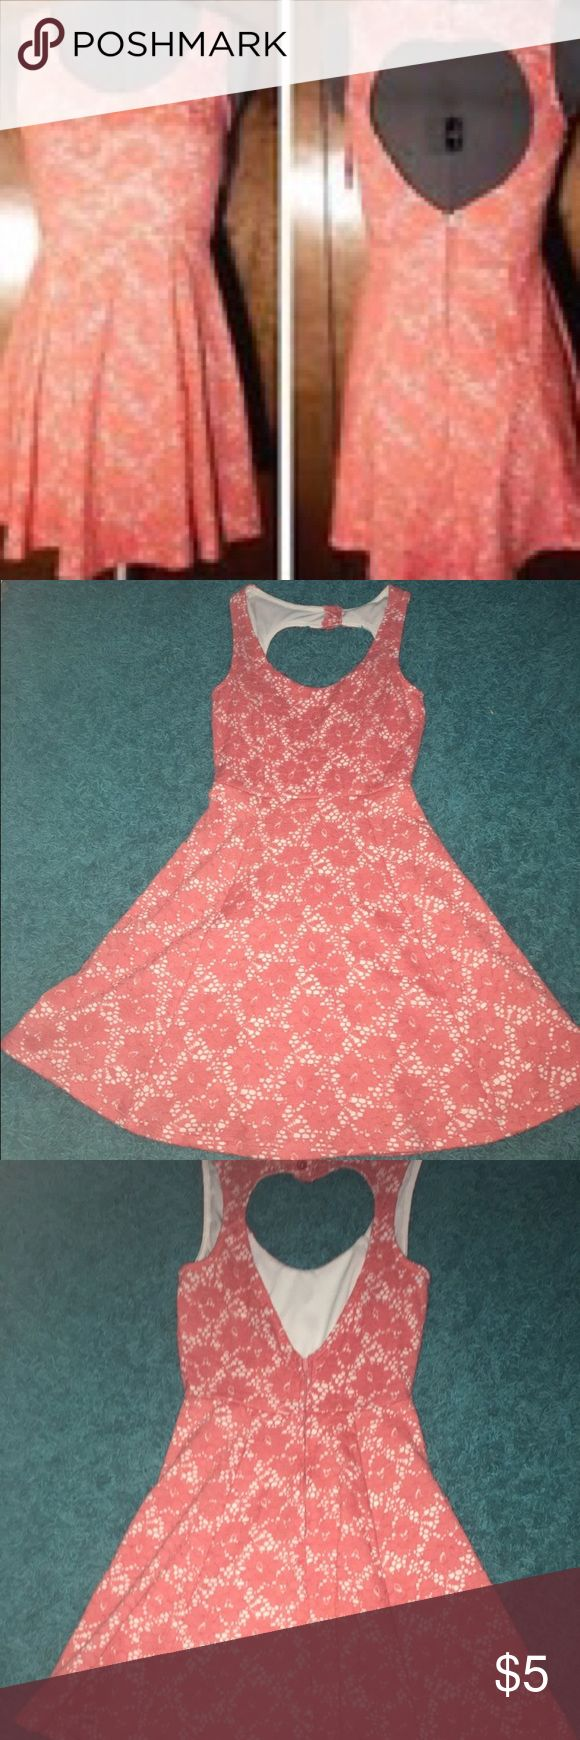 Pink Heart Cut Out Dress wet seal heart cut out dress, pink lace over a white cover, super cut for summer days! Wet Seal Dresses Mini